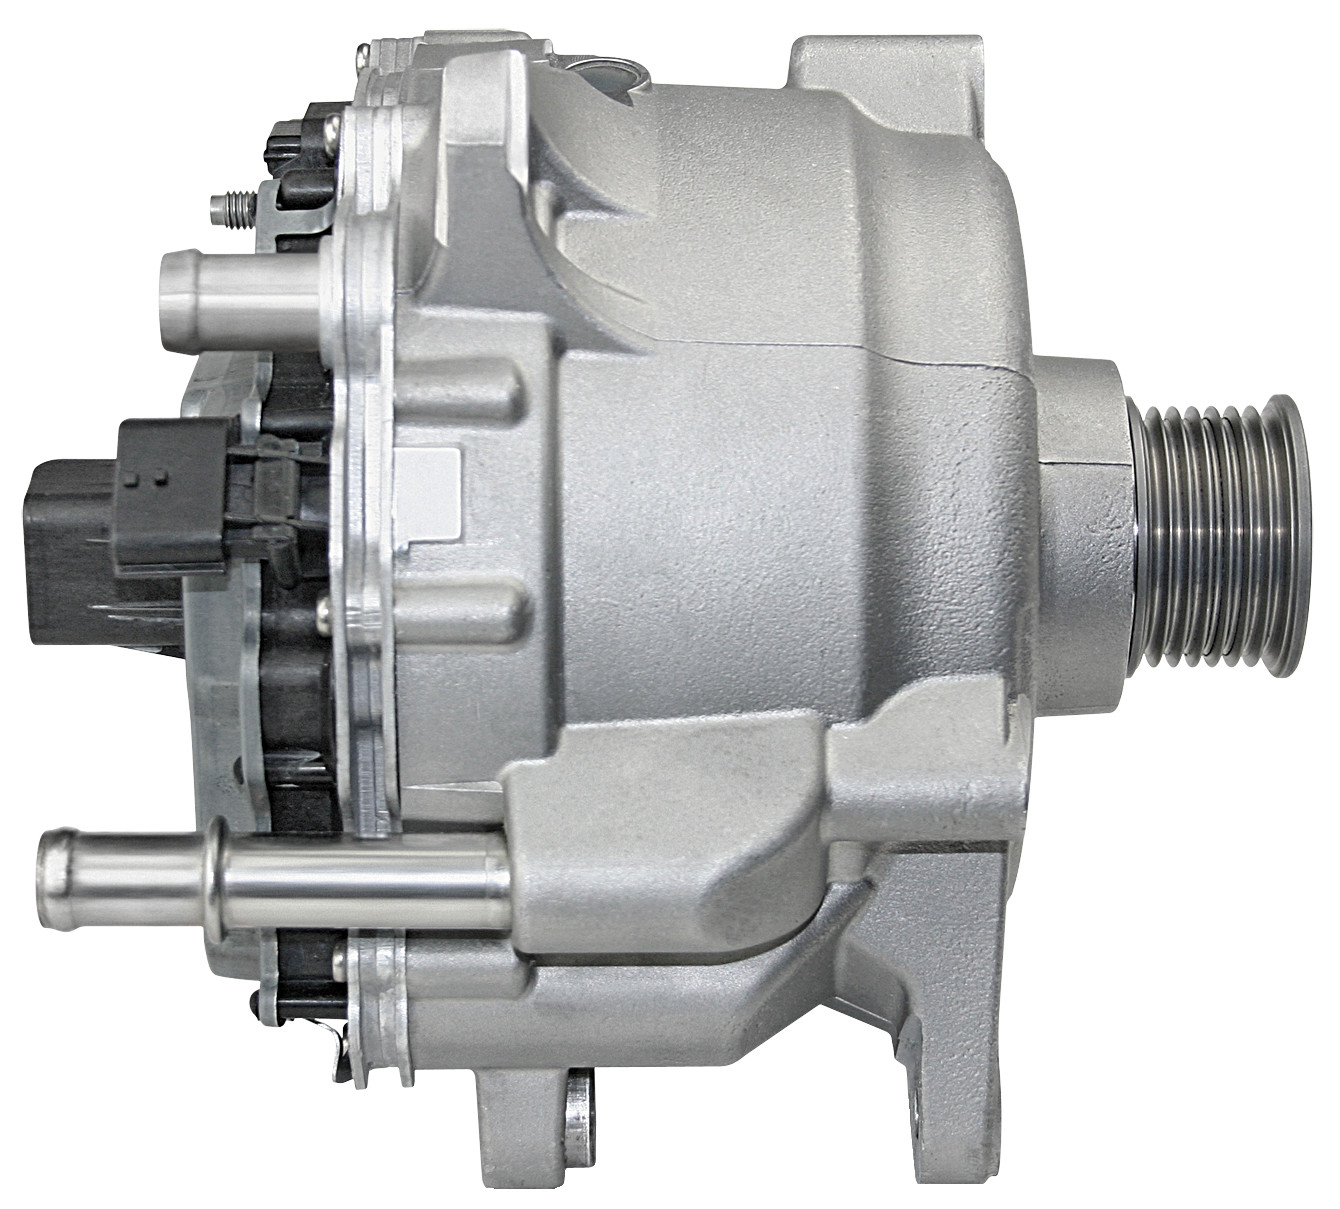 Mild Hybrid Electric Vehicle Mhev Components